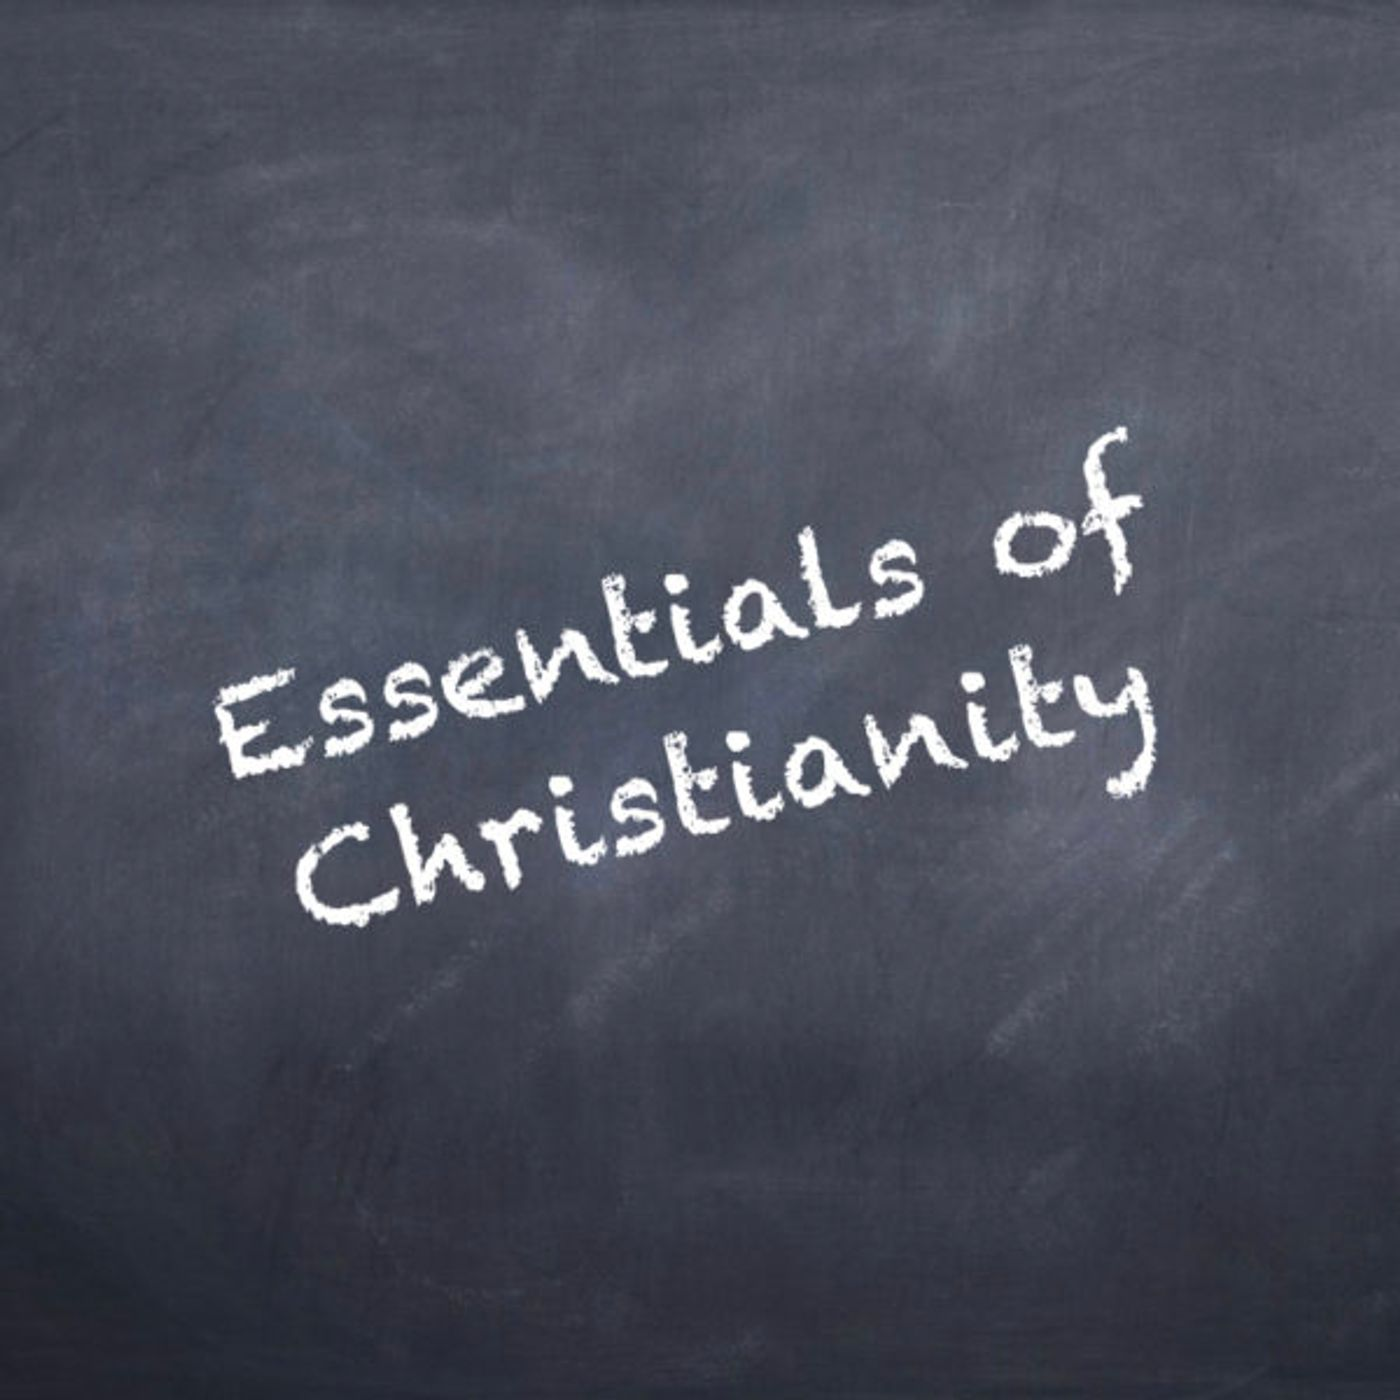 What are the Essentials of Christianity?